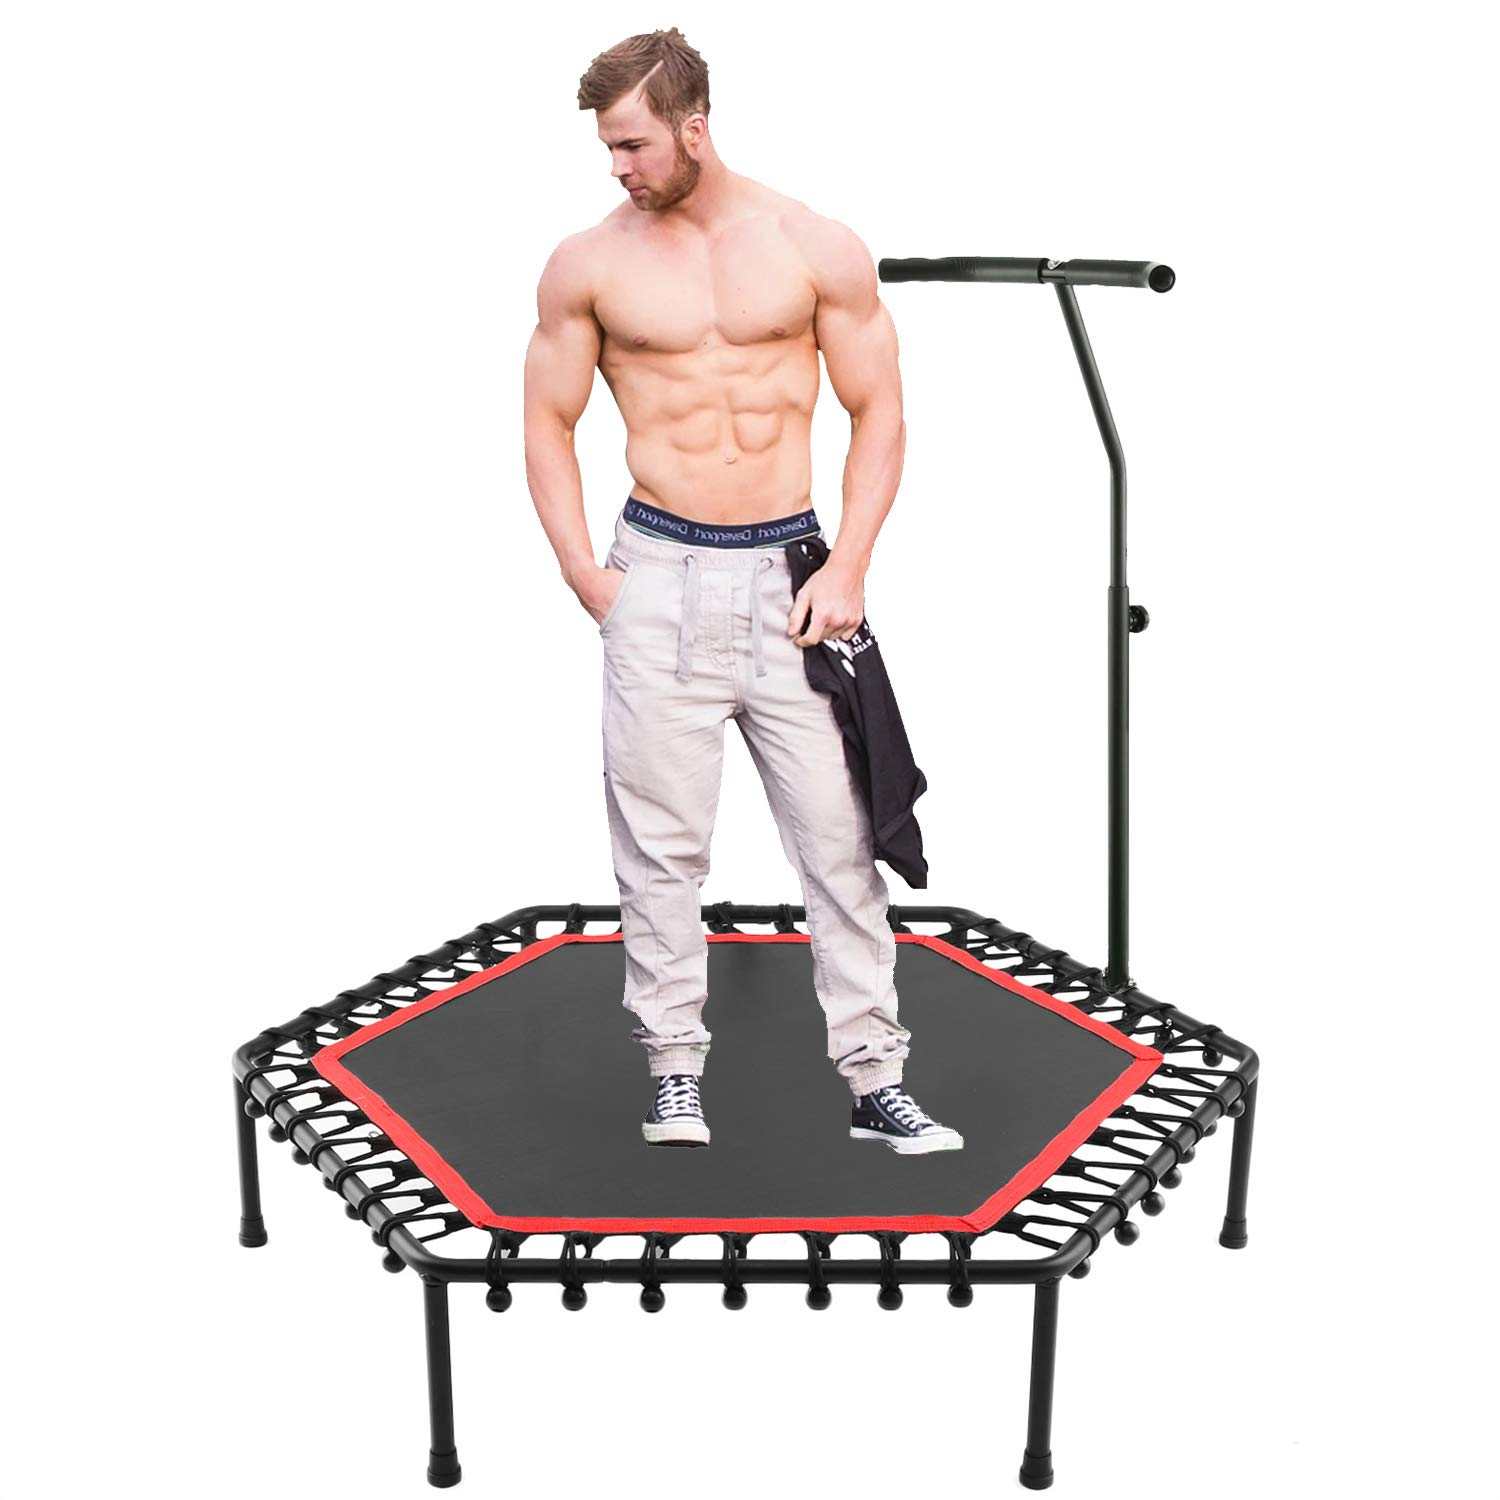 shaofu 50 Silent Rebounders Mini Trampolines Exercise Indoor with Adjustable Handrail for Adults Kids Max 220 lbs